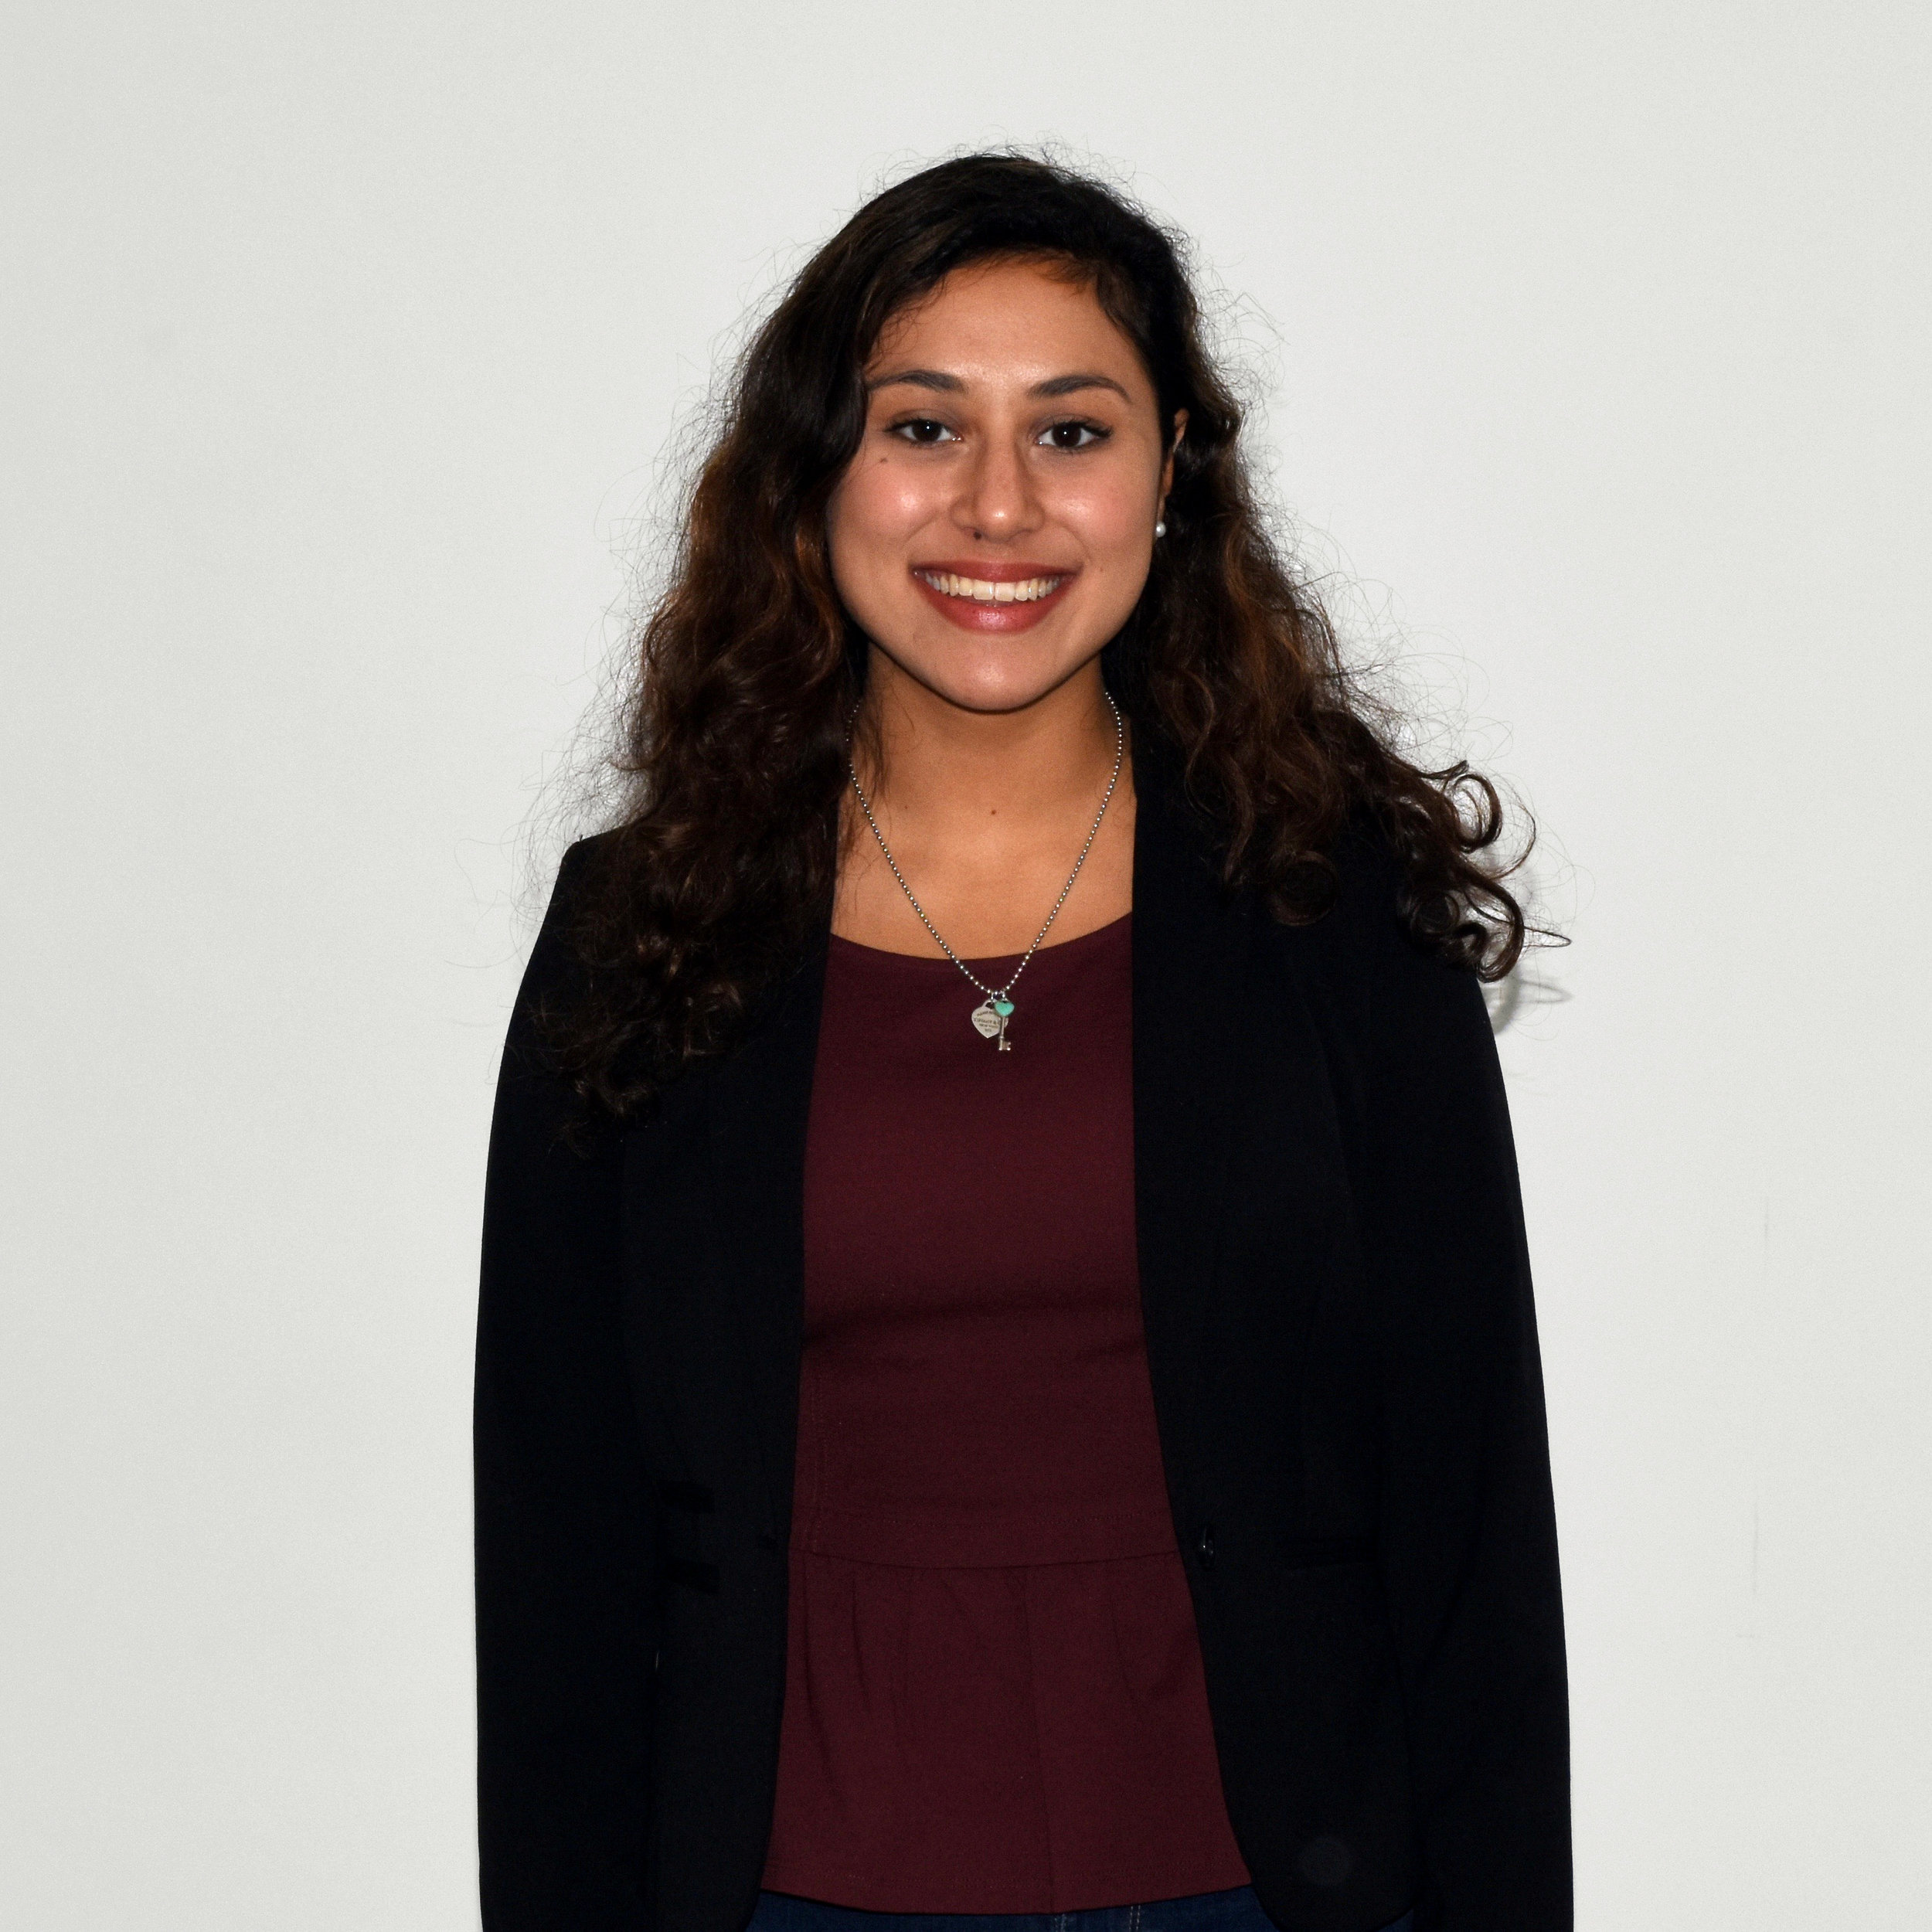 Karen Zaklama   Environmental and Sustainability Sciences, 2021  My goal is to make sustainability less of a buzzword and more of a lifestyle. CSC gives me analytic tools and practice to make this goal a reality.